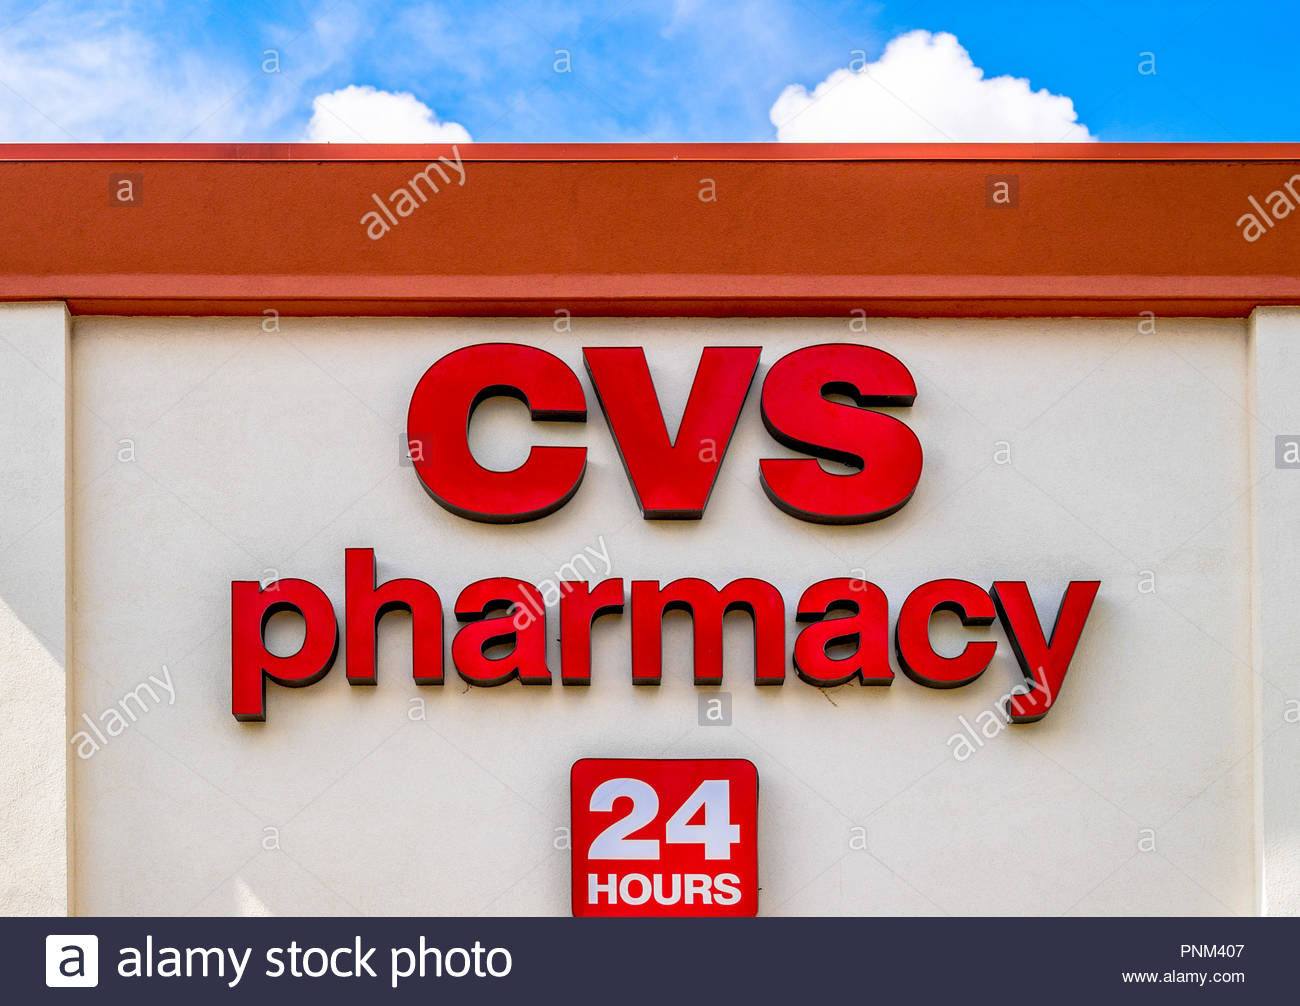 cvs pharmacy stock photos  u0026 cvs pharmacy stock images